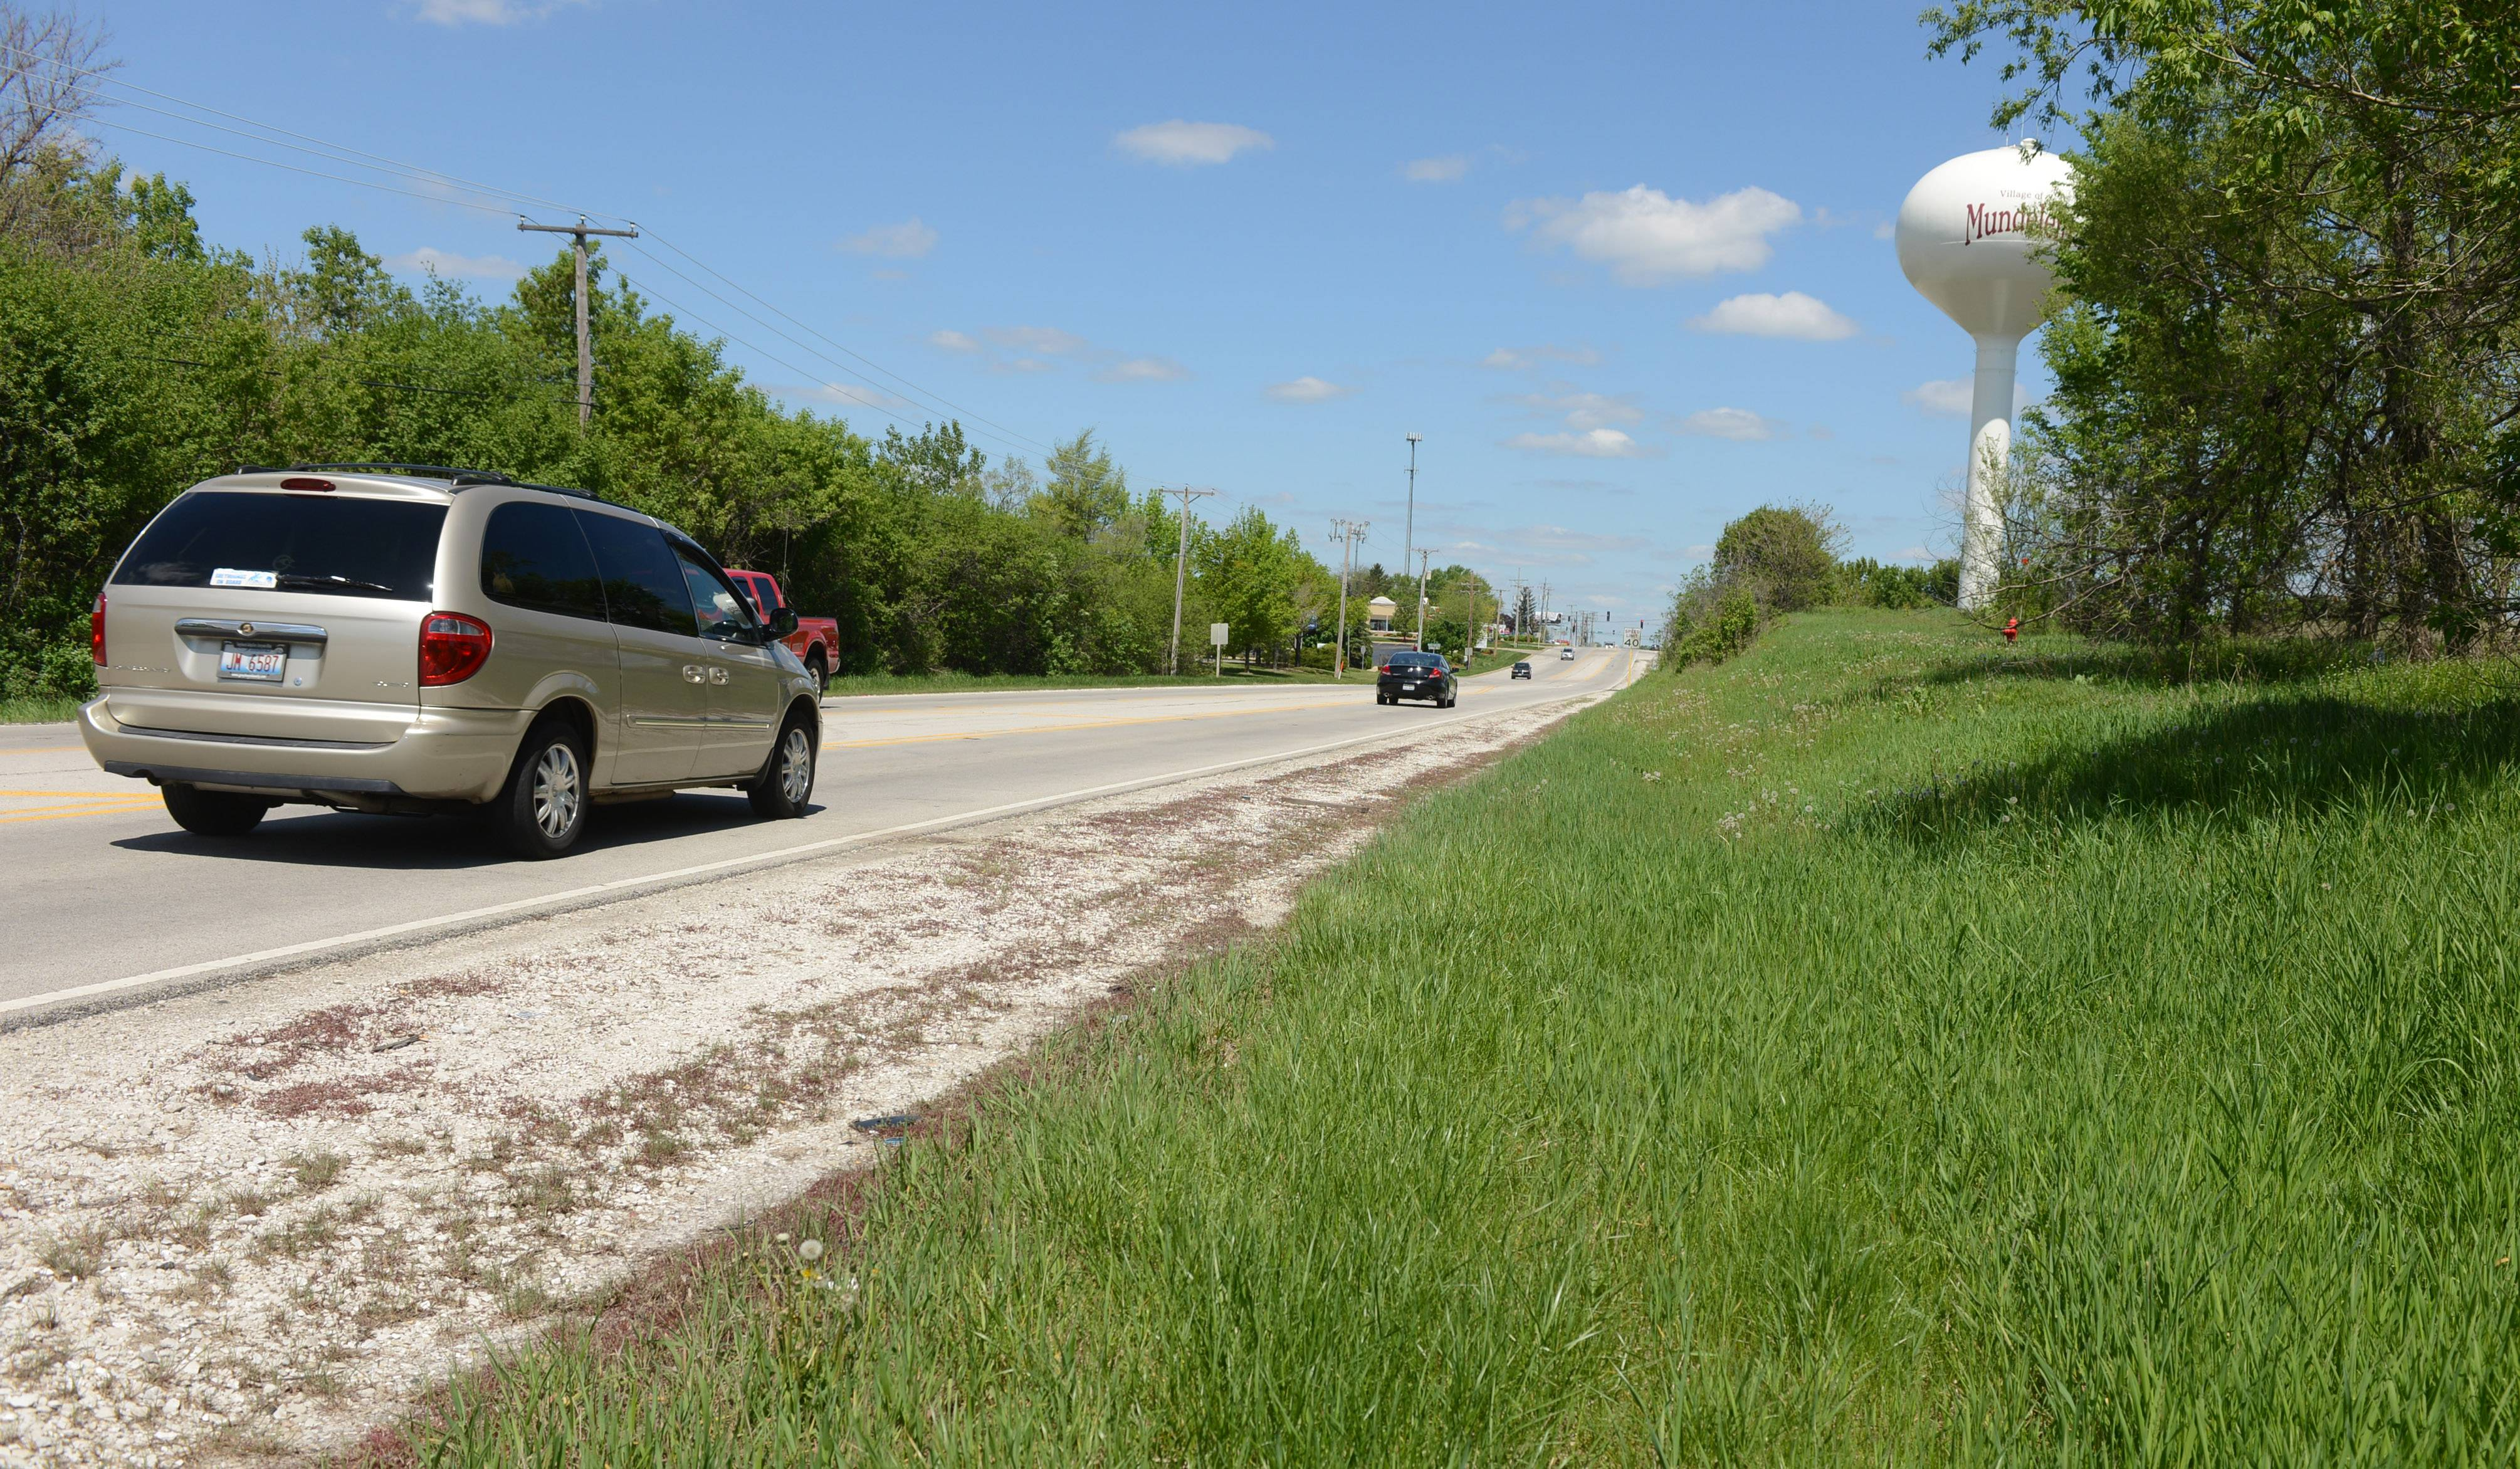 Carl H. Roderwald, 40, of Mundelein was found dead about 10 feet from the road in some tall grass along Route 83 near Route 176 in Mundelein.